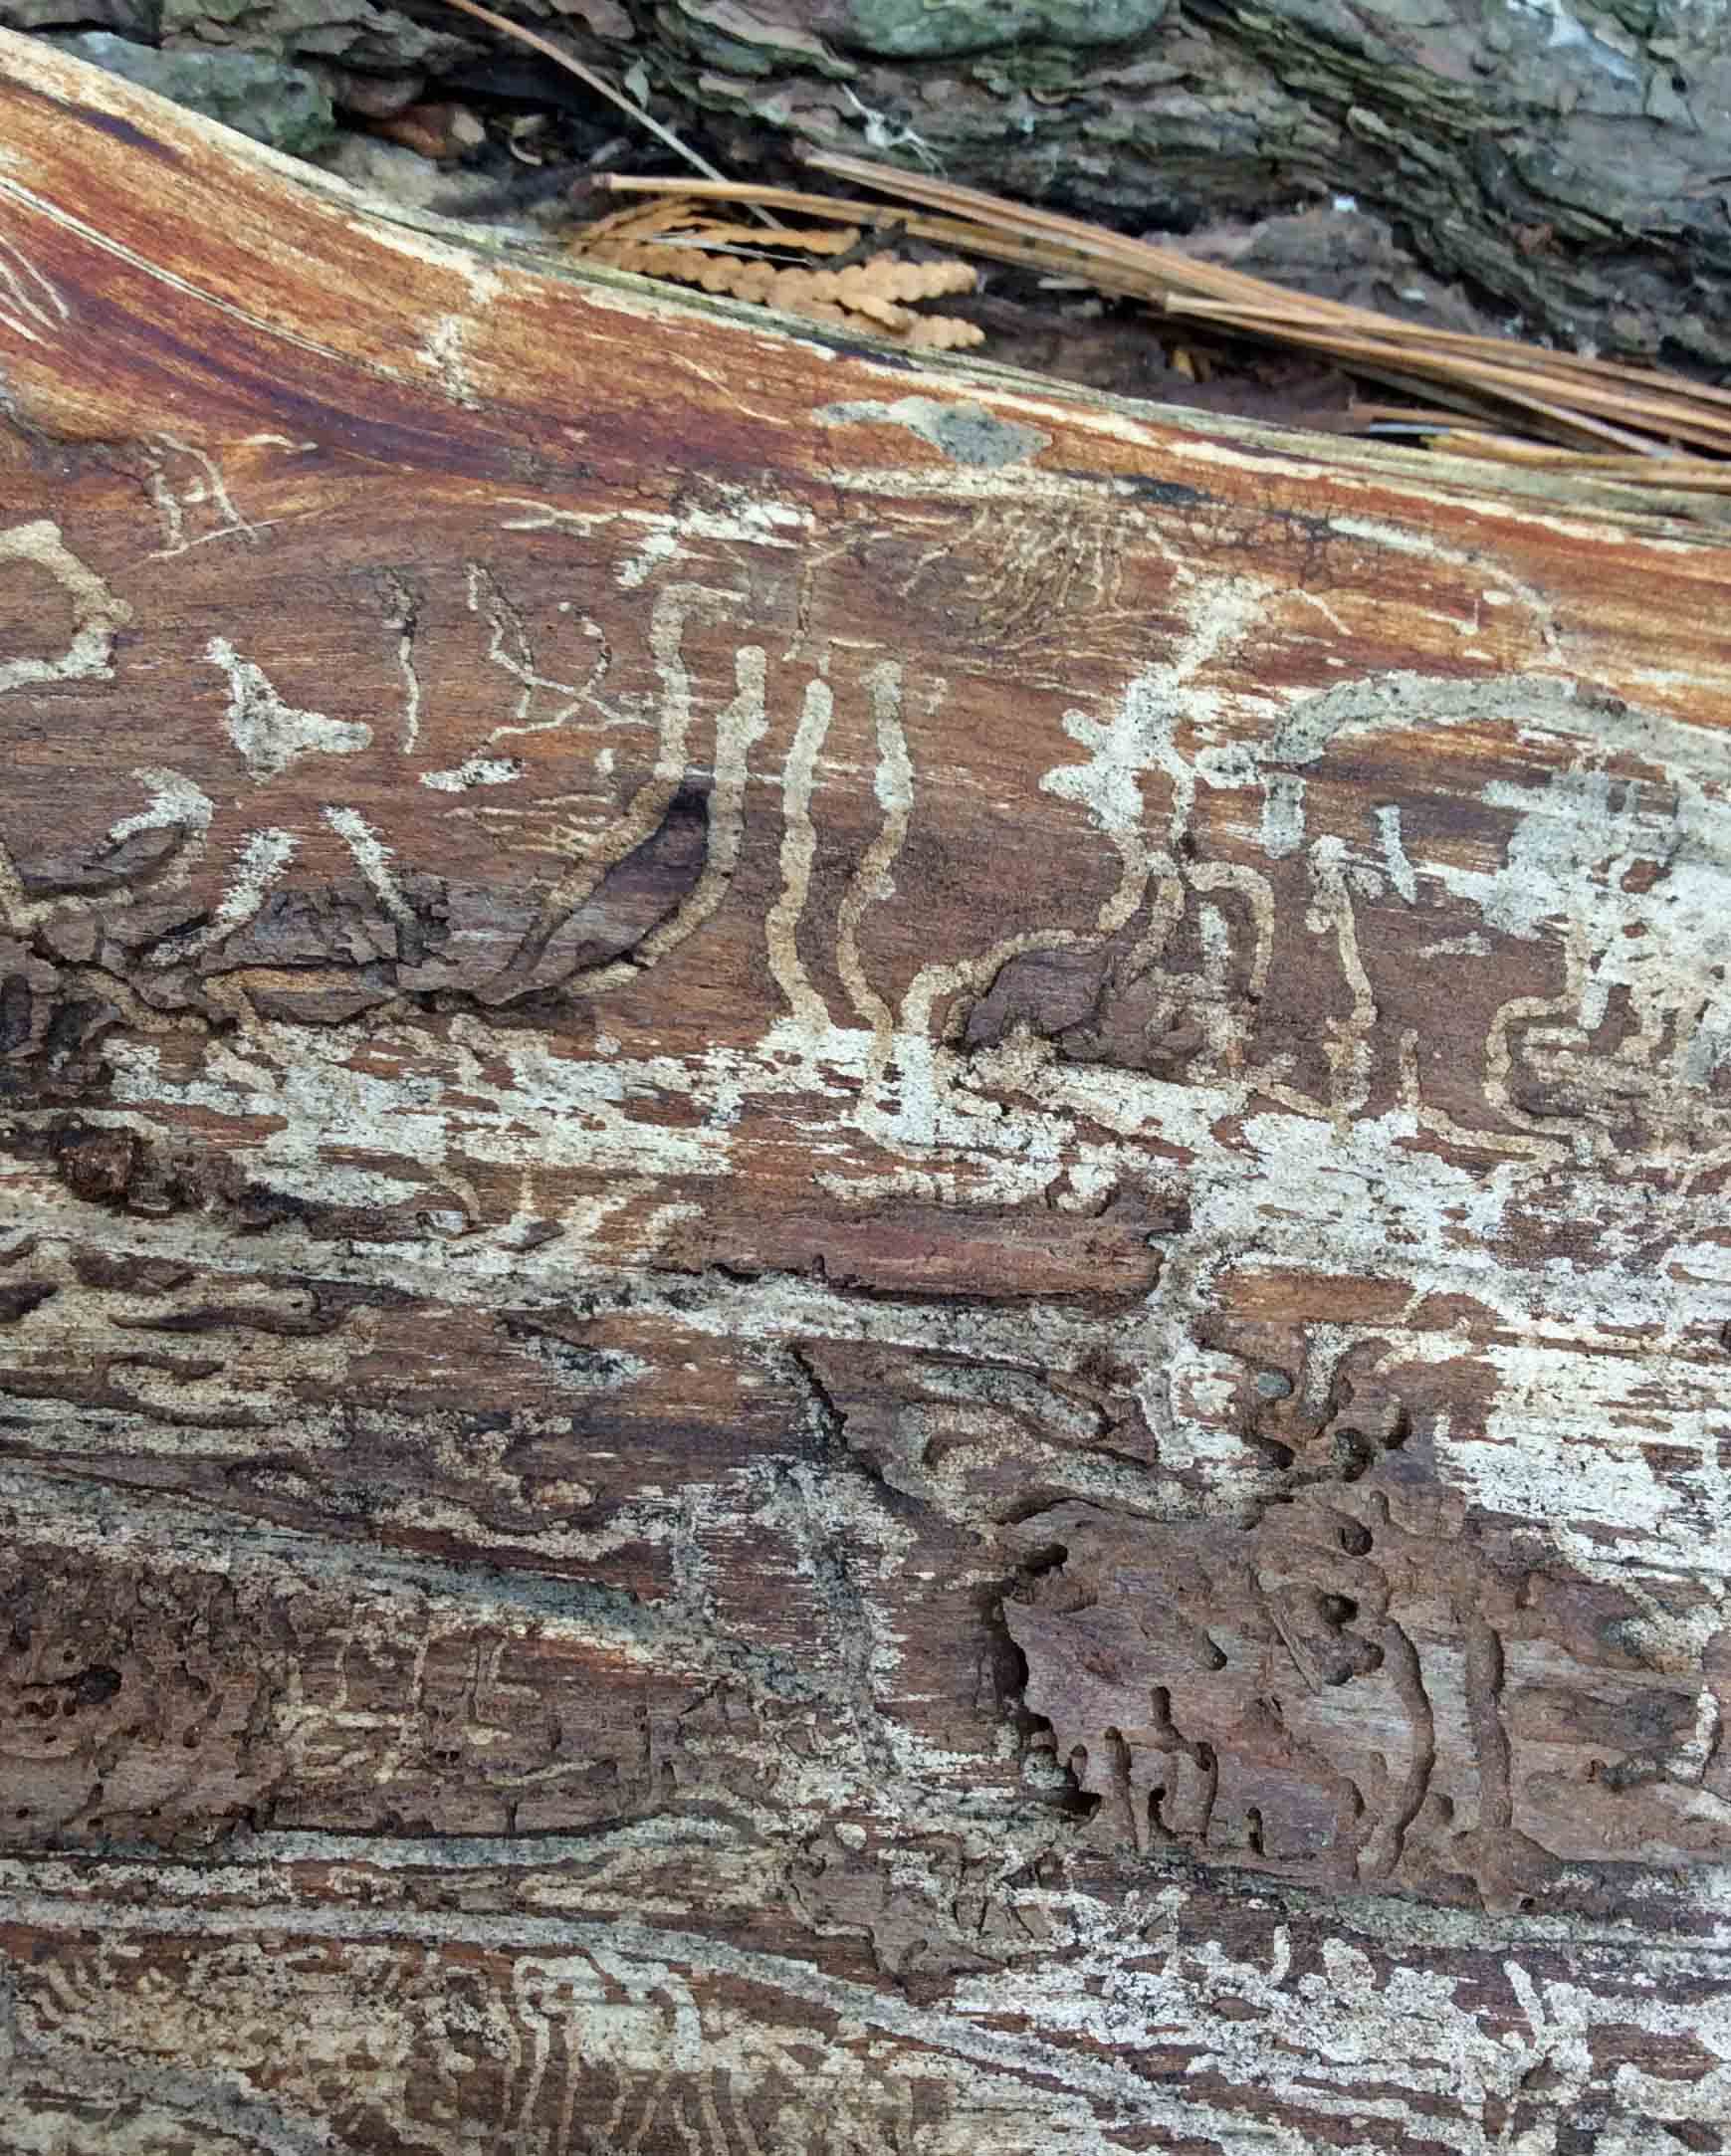 larval tracks in pine wood